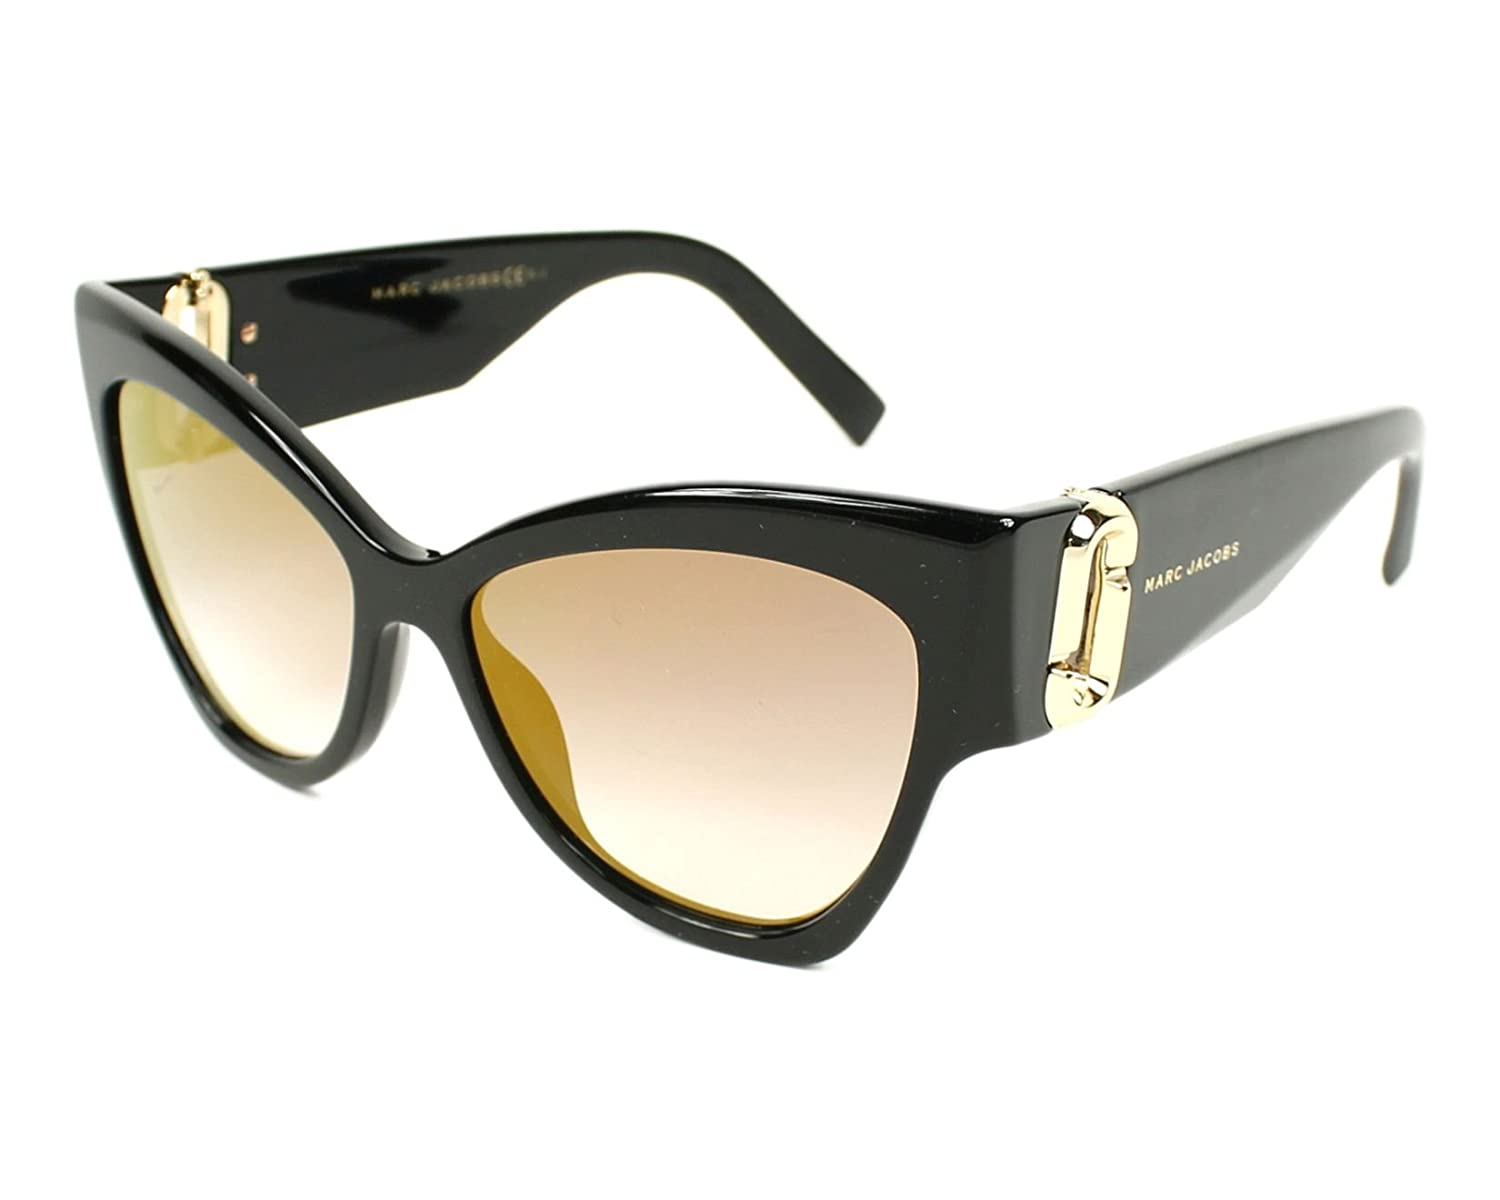 Marc Jacobs Women's Marc109s Cateye Sunglasses, Black/Gray SF Gold SP, 54 mm